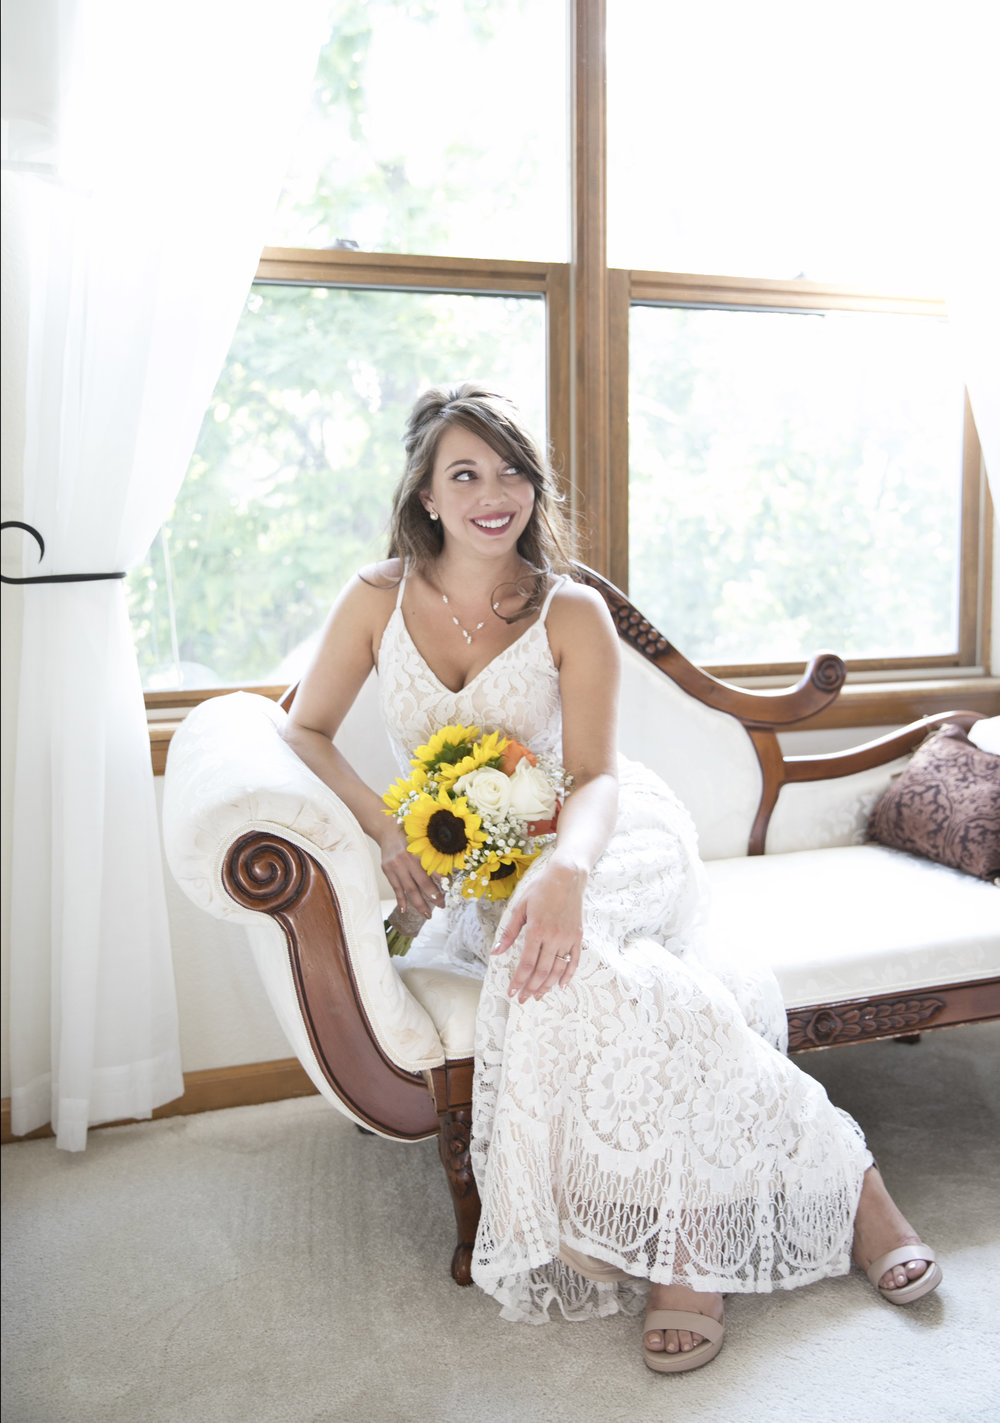 Bride on daybed.jpg